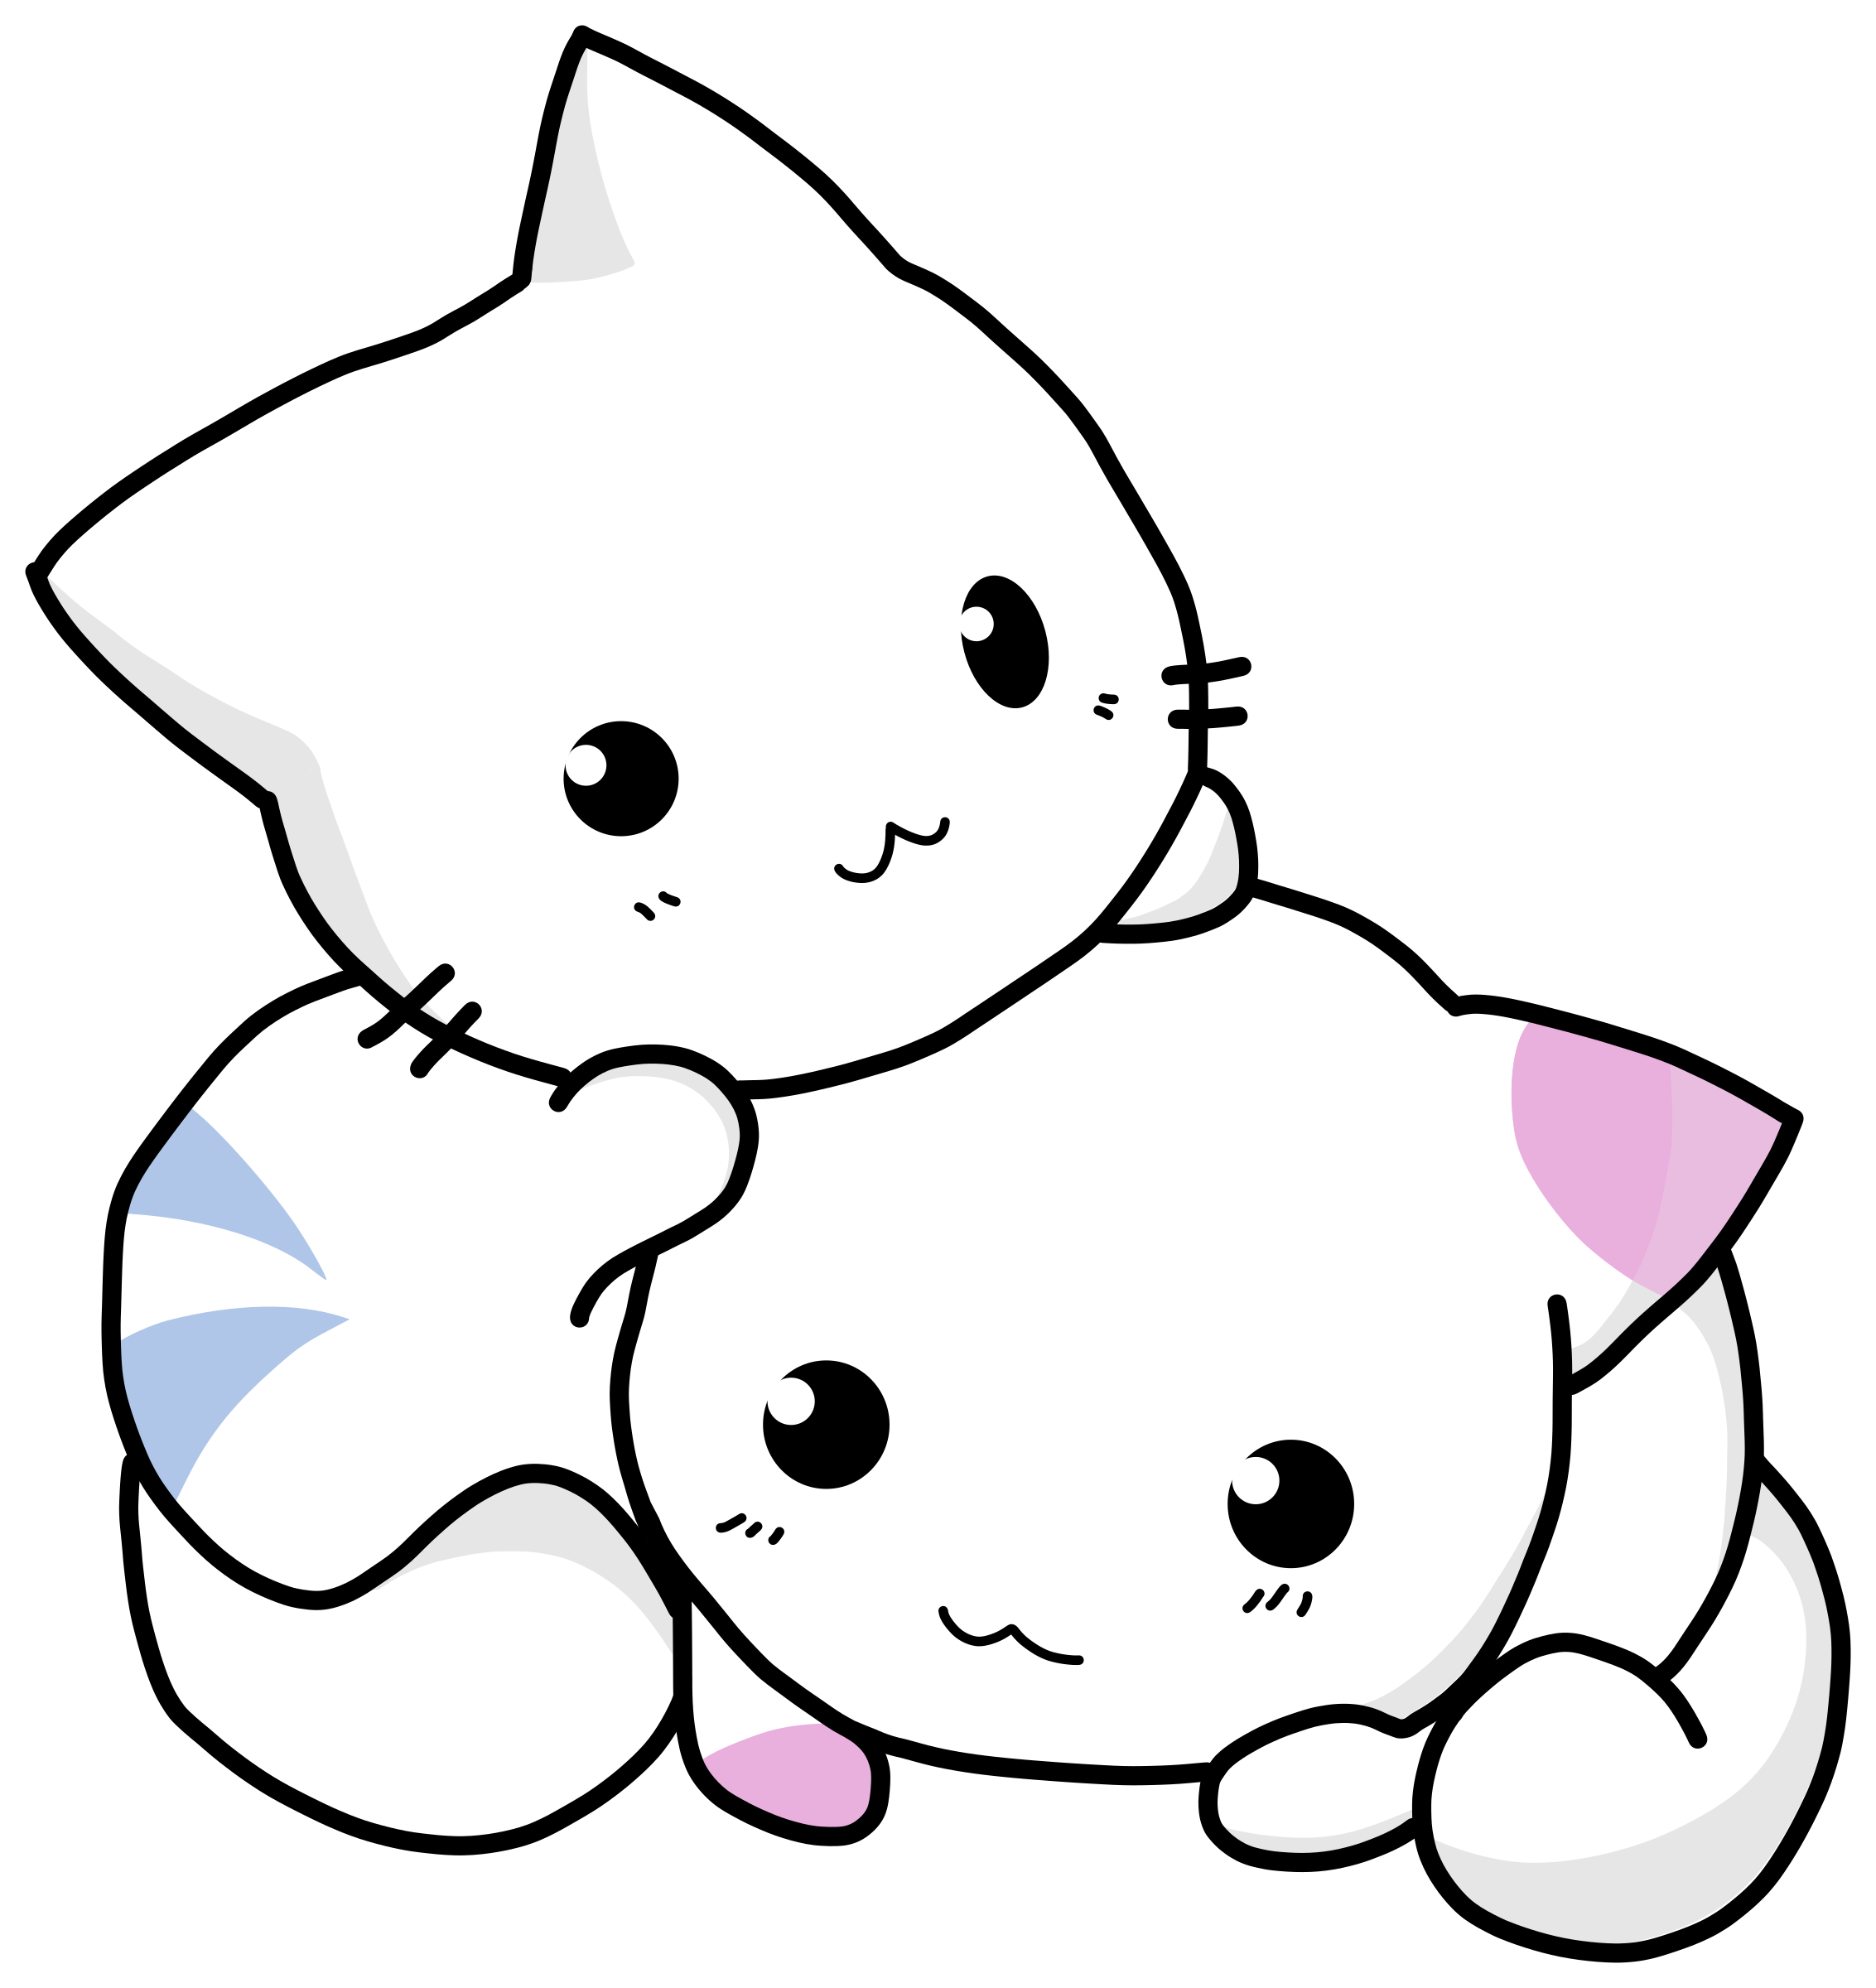 Cuty cats big image. Kittens clipart two